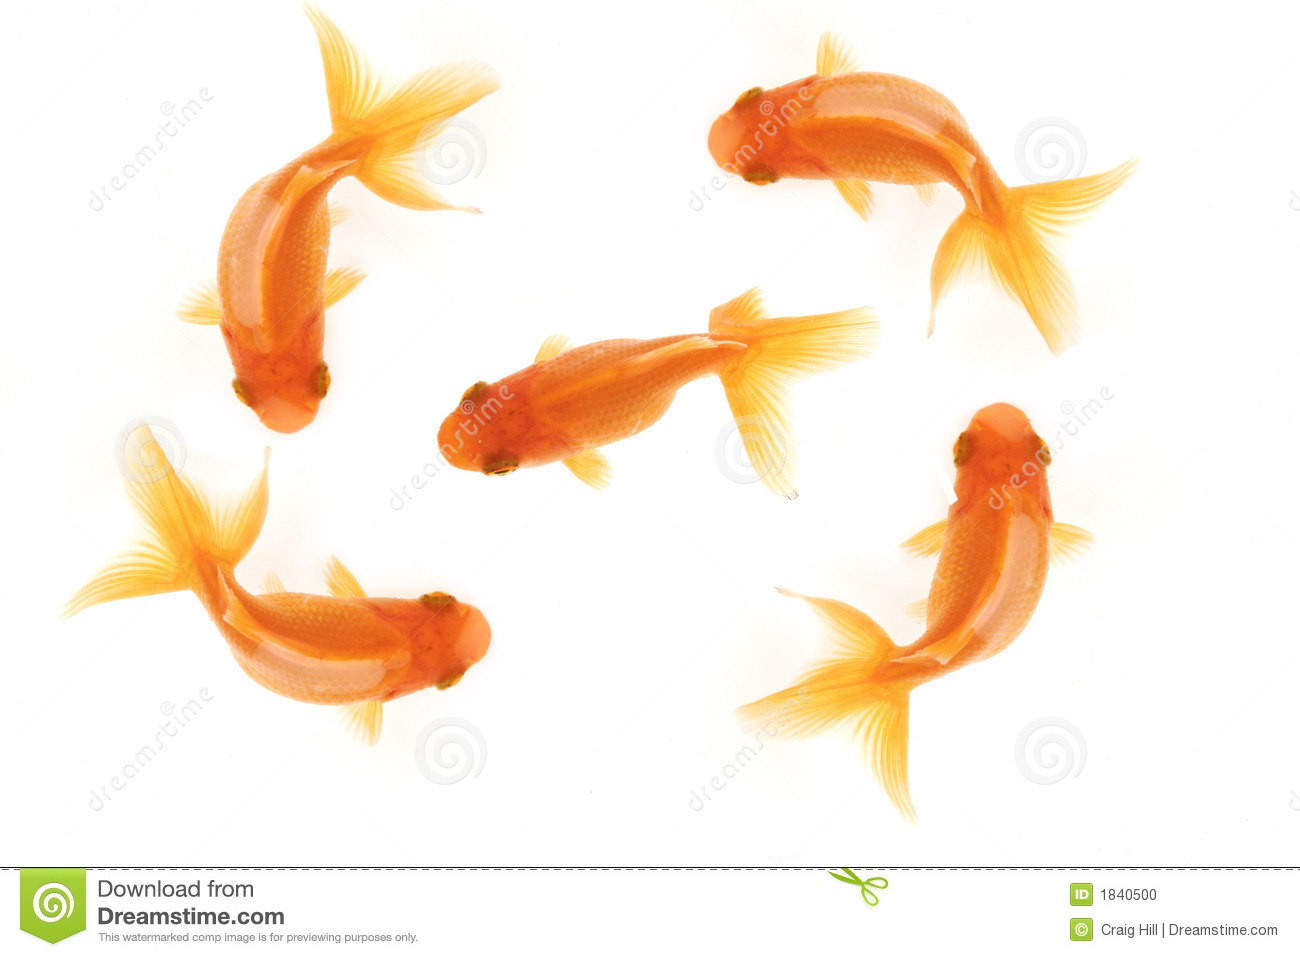 Cute Fish Wallpaper Hd Five Goldfish Stock Photo Image 1840500